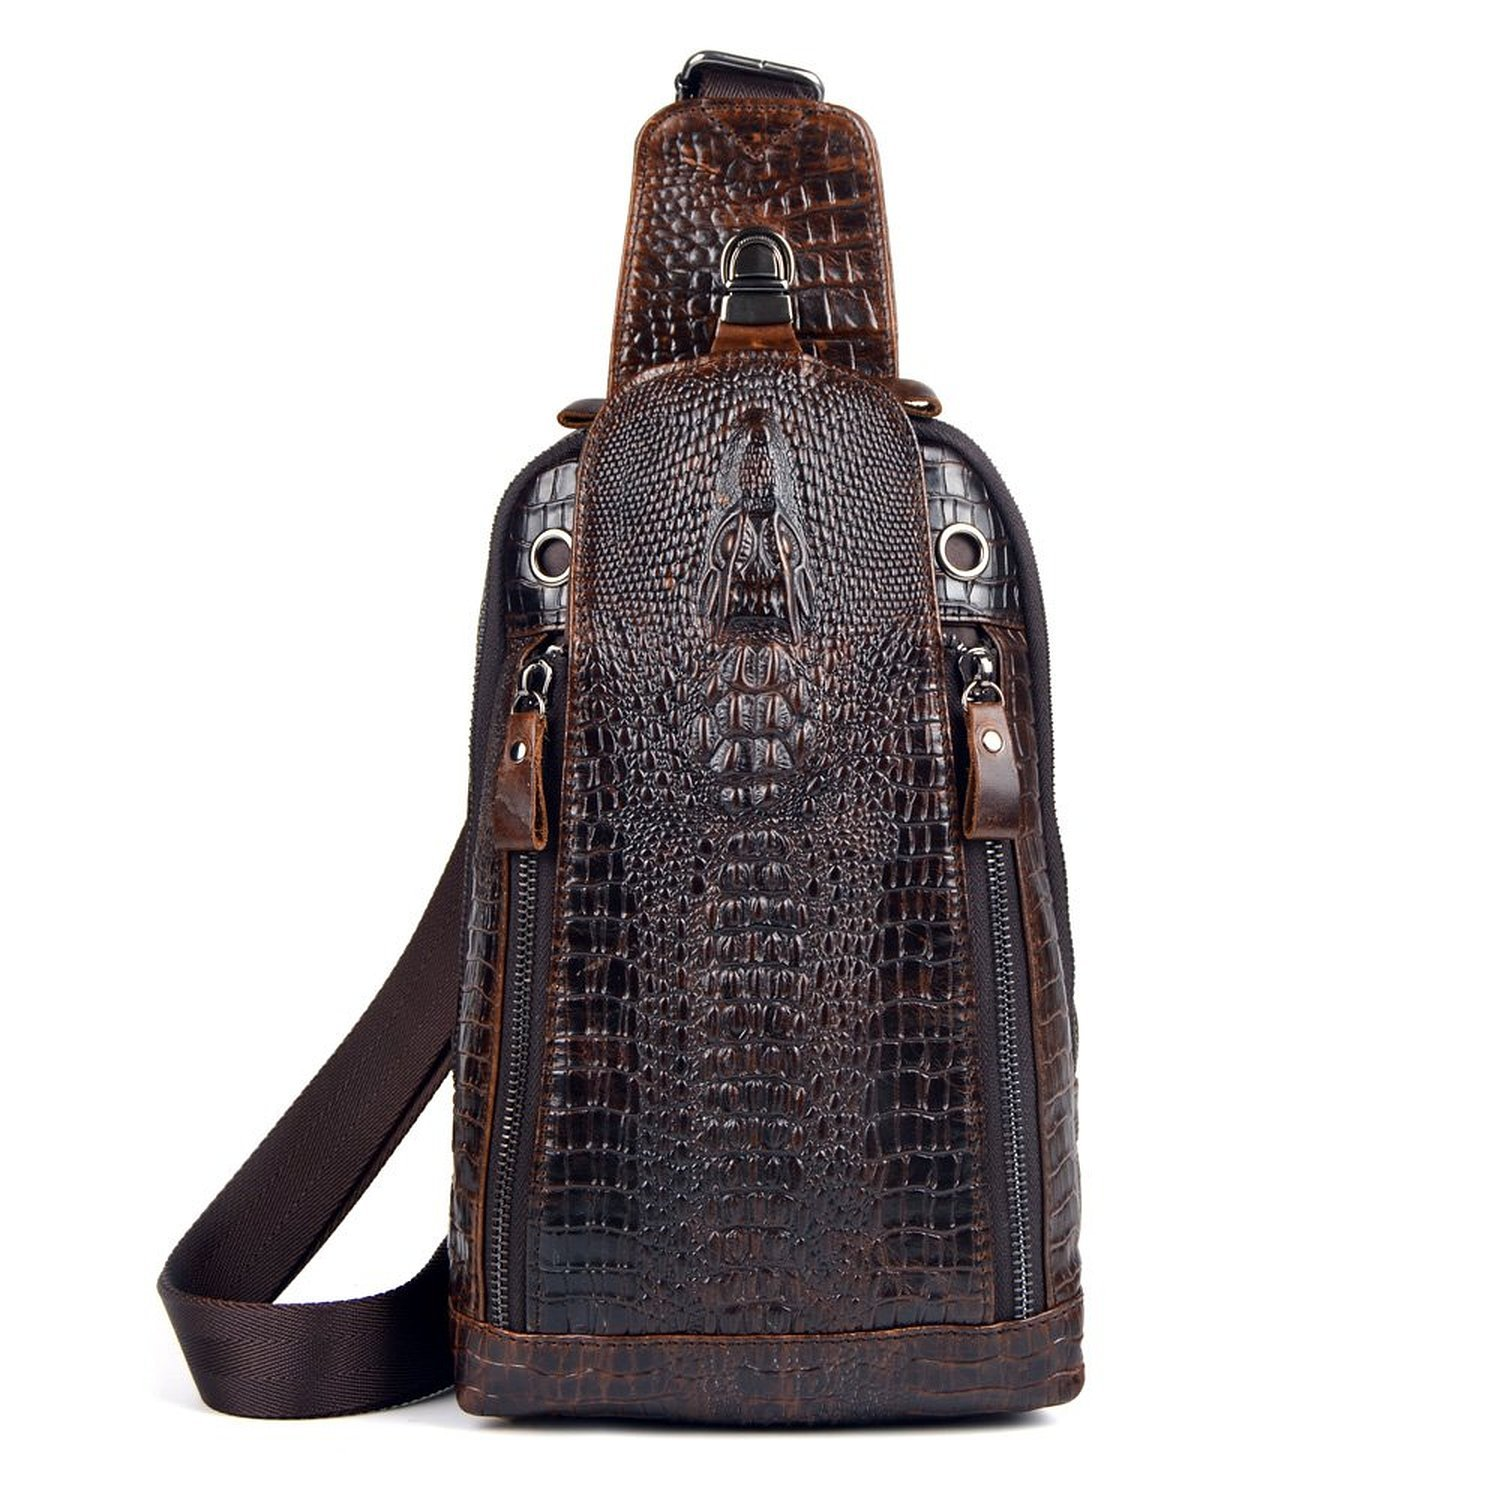 752eaa7c6d Sunmig Men s Crocodile Genuine Leather Crossbody Chest Bag Hiking Sling  Daypack free shipping